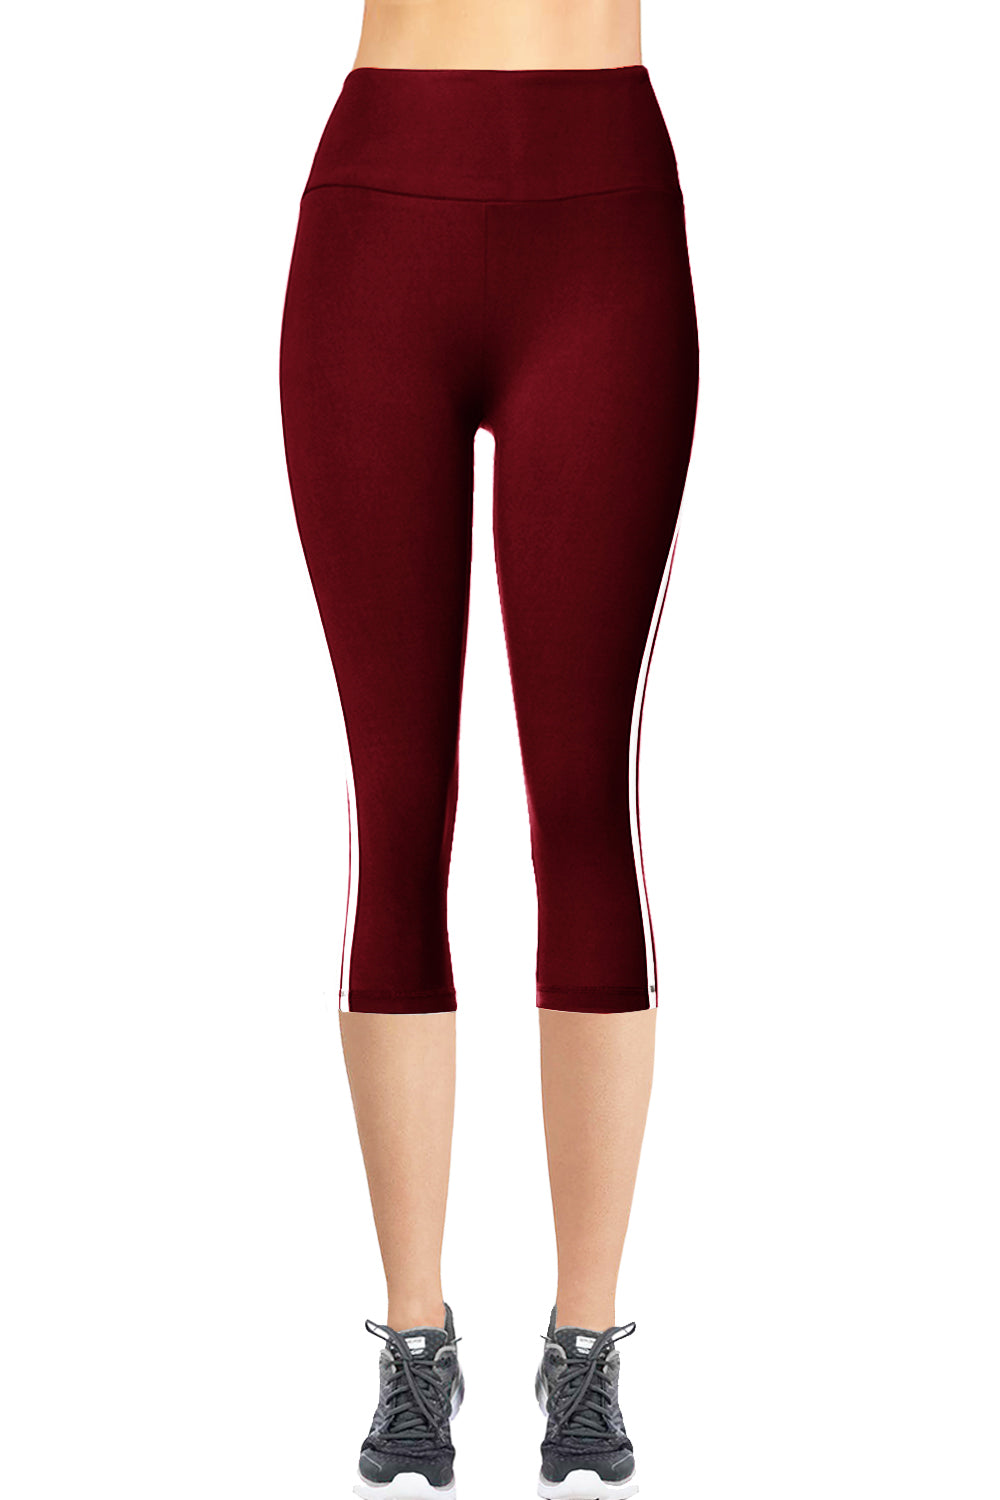 VIV Collection STRIPED Signature CAPRI Leggings Ultra Soft and Strong Tension Elastic YOGA MID WAIST NO POCKET